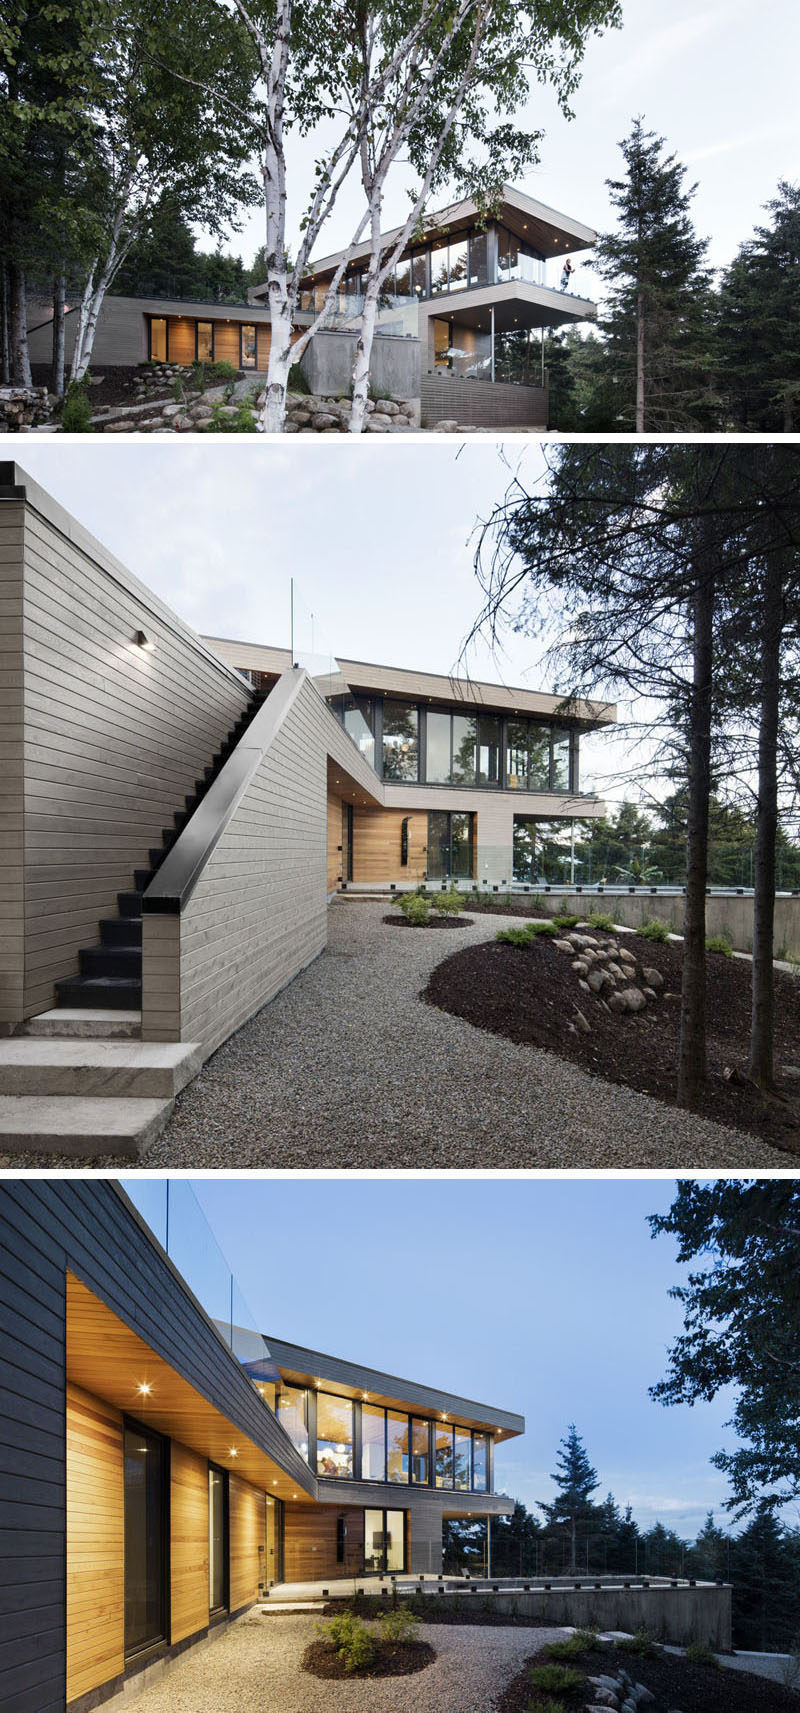 18 Modern House In The Forest // The design of this house lets the home owners enjoy the views of the surrounding forest and river. #ModernHouse #ModernArchitecture #HouseInForest #HouseDesign